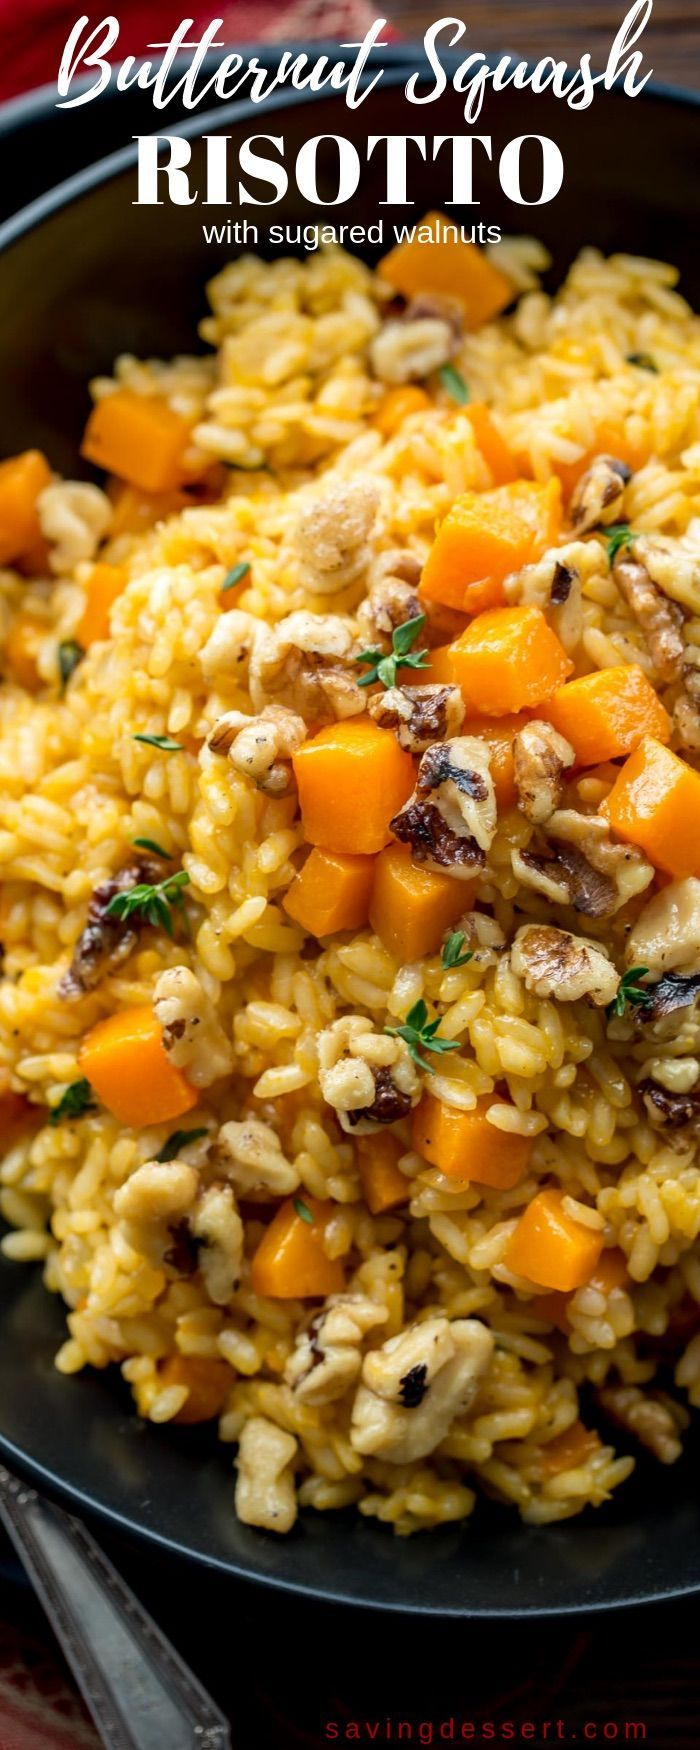 Butternut Squash Risotto with Sugared Walnuts Butternut Squash Risotto with Sugared Walnuts - A delicious seasonal dish loaded with butternut squash, thyme and creamy Arborio rice.  Perfect as a hearty side or filling enough for a main dish.